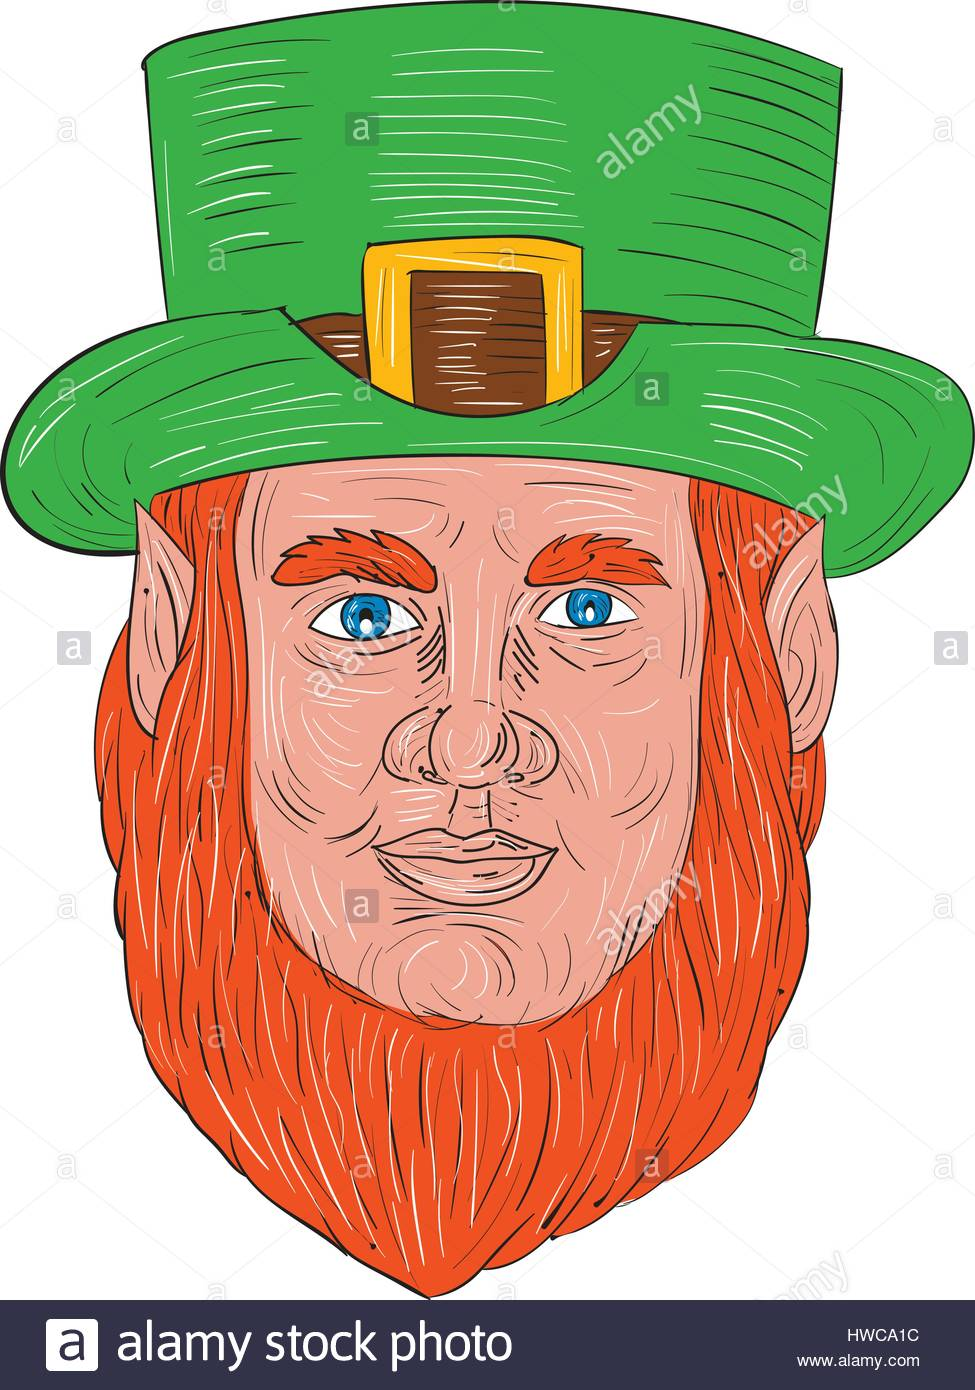 975x1390 Drawing Sketch Style Illustration Of A Leprechaun Head Viewed